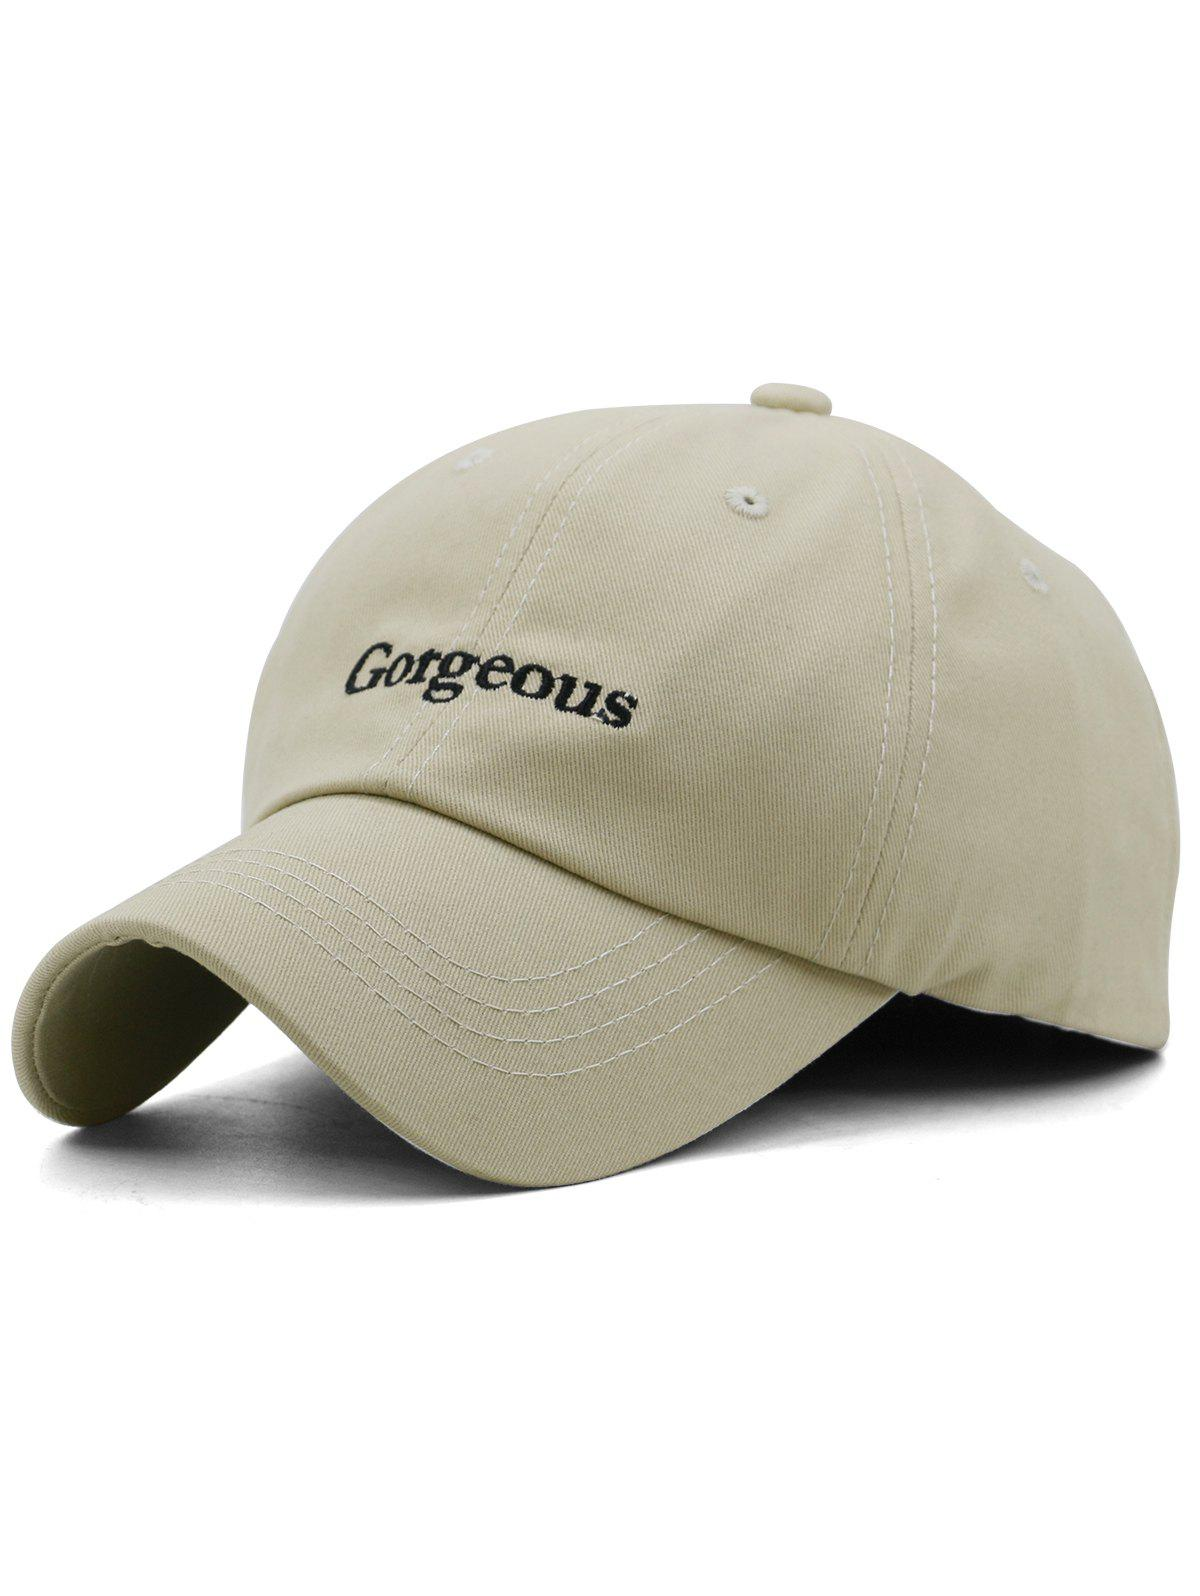 Gorgeous Embroidery Adjustable Trucker Hat